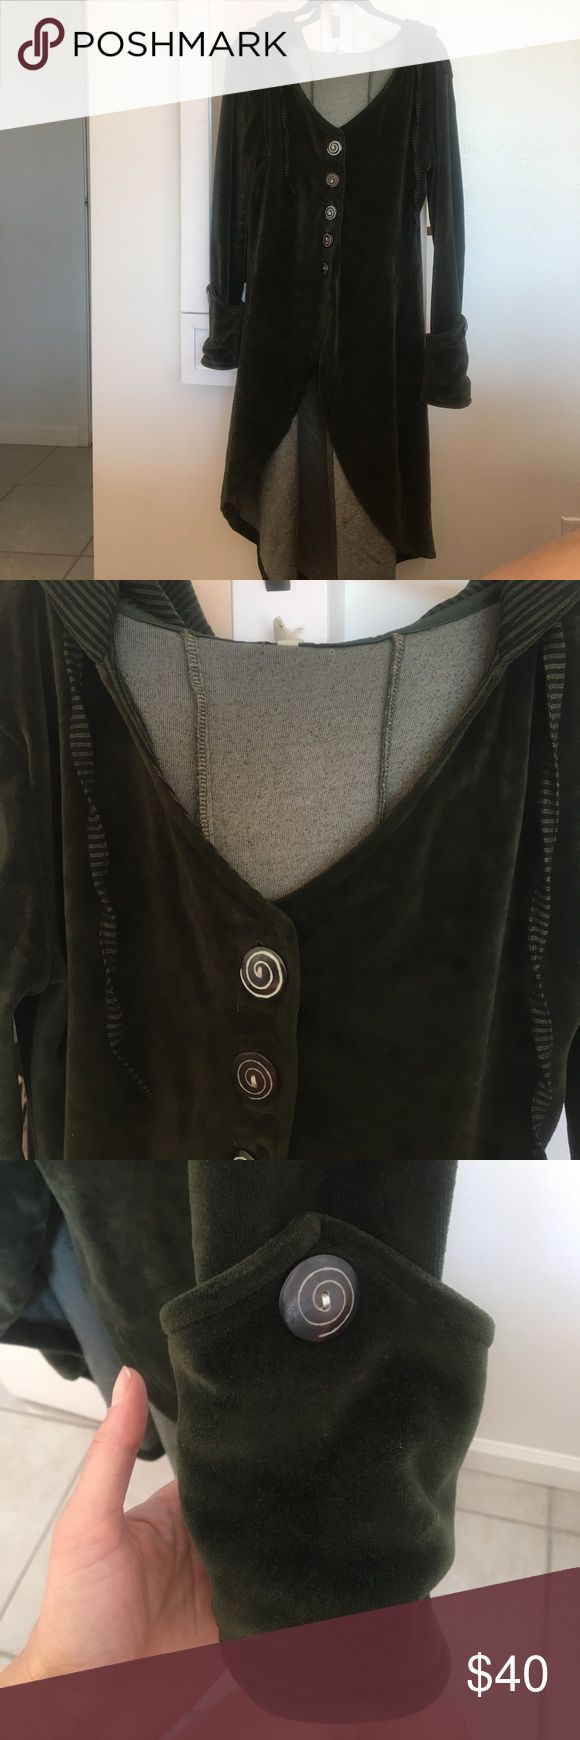 """Long velvet dark green coat/jacket Dark green long velvet jacket. With hood. Wooden buttons. Handmade in Nepal. Size medium. It is kinda big on me and I am 5""""7 135 36A waist 28 hips 38 only wore once for a catalog shoot. Very warm Avatar Jackets & Coats Trench Coats"""